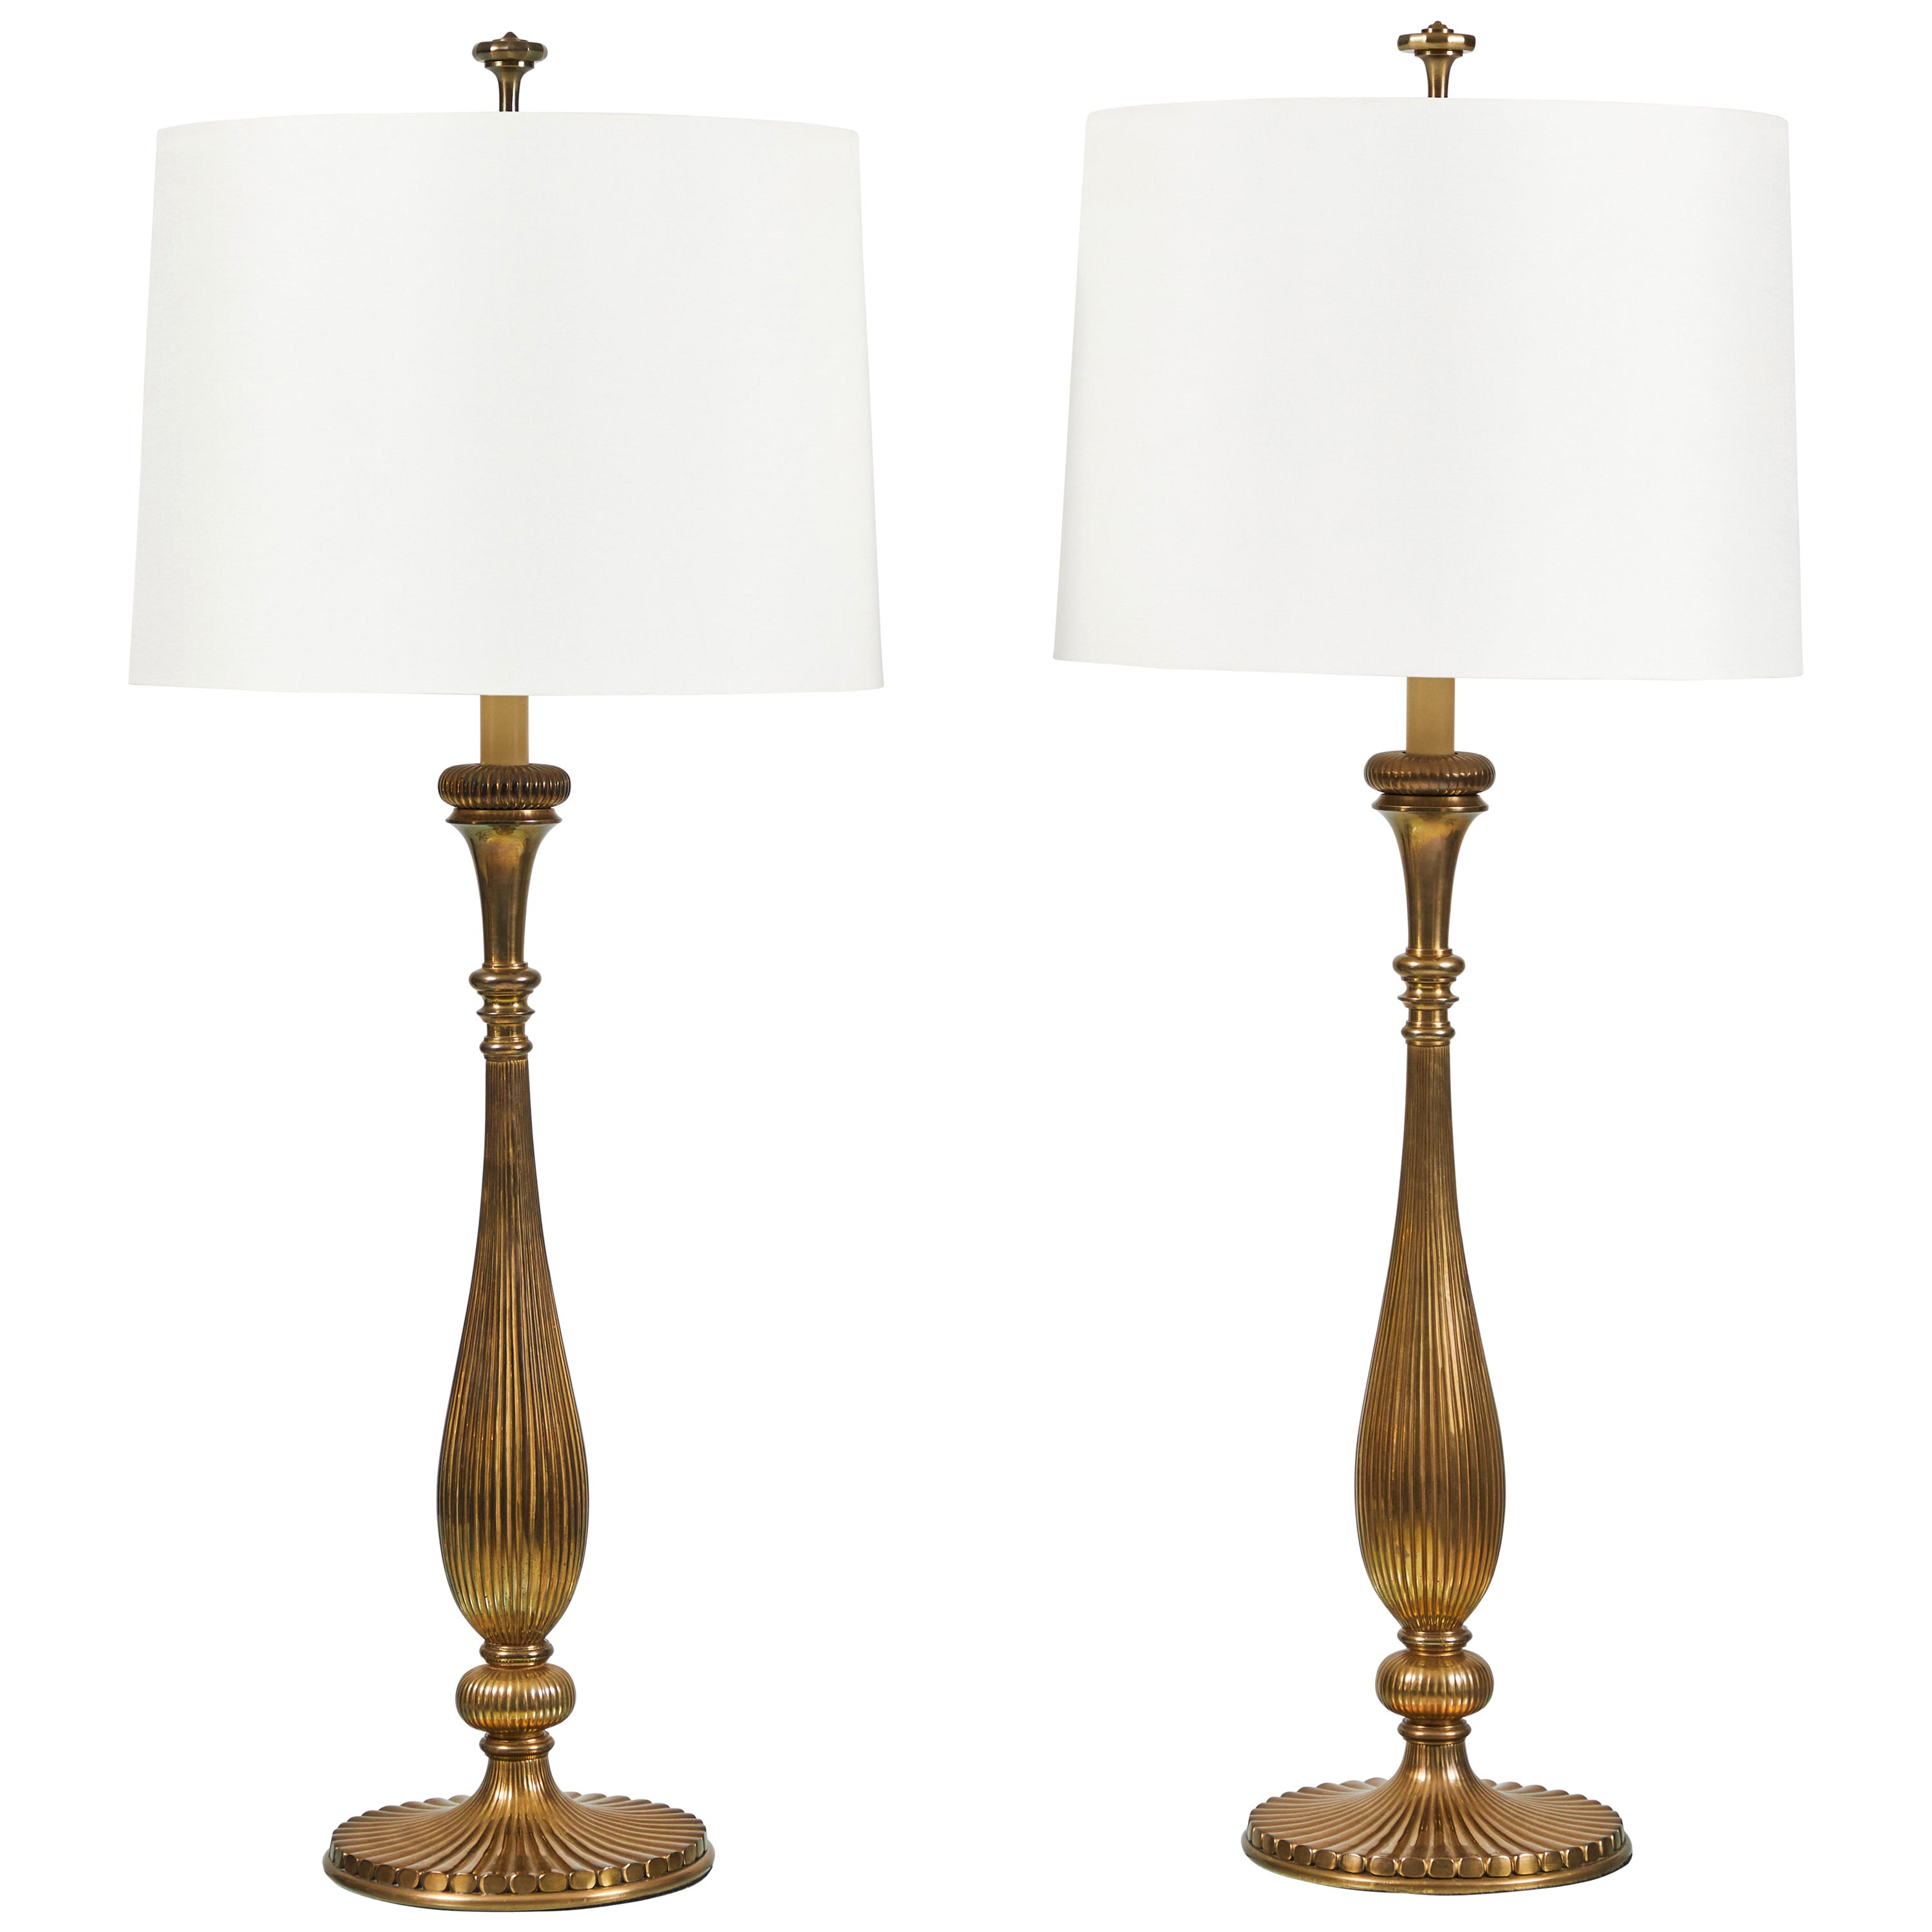 Pair of Brass Lamps by Chapman Lamps